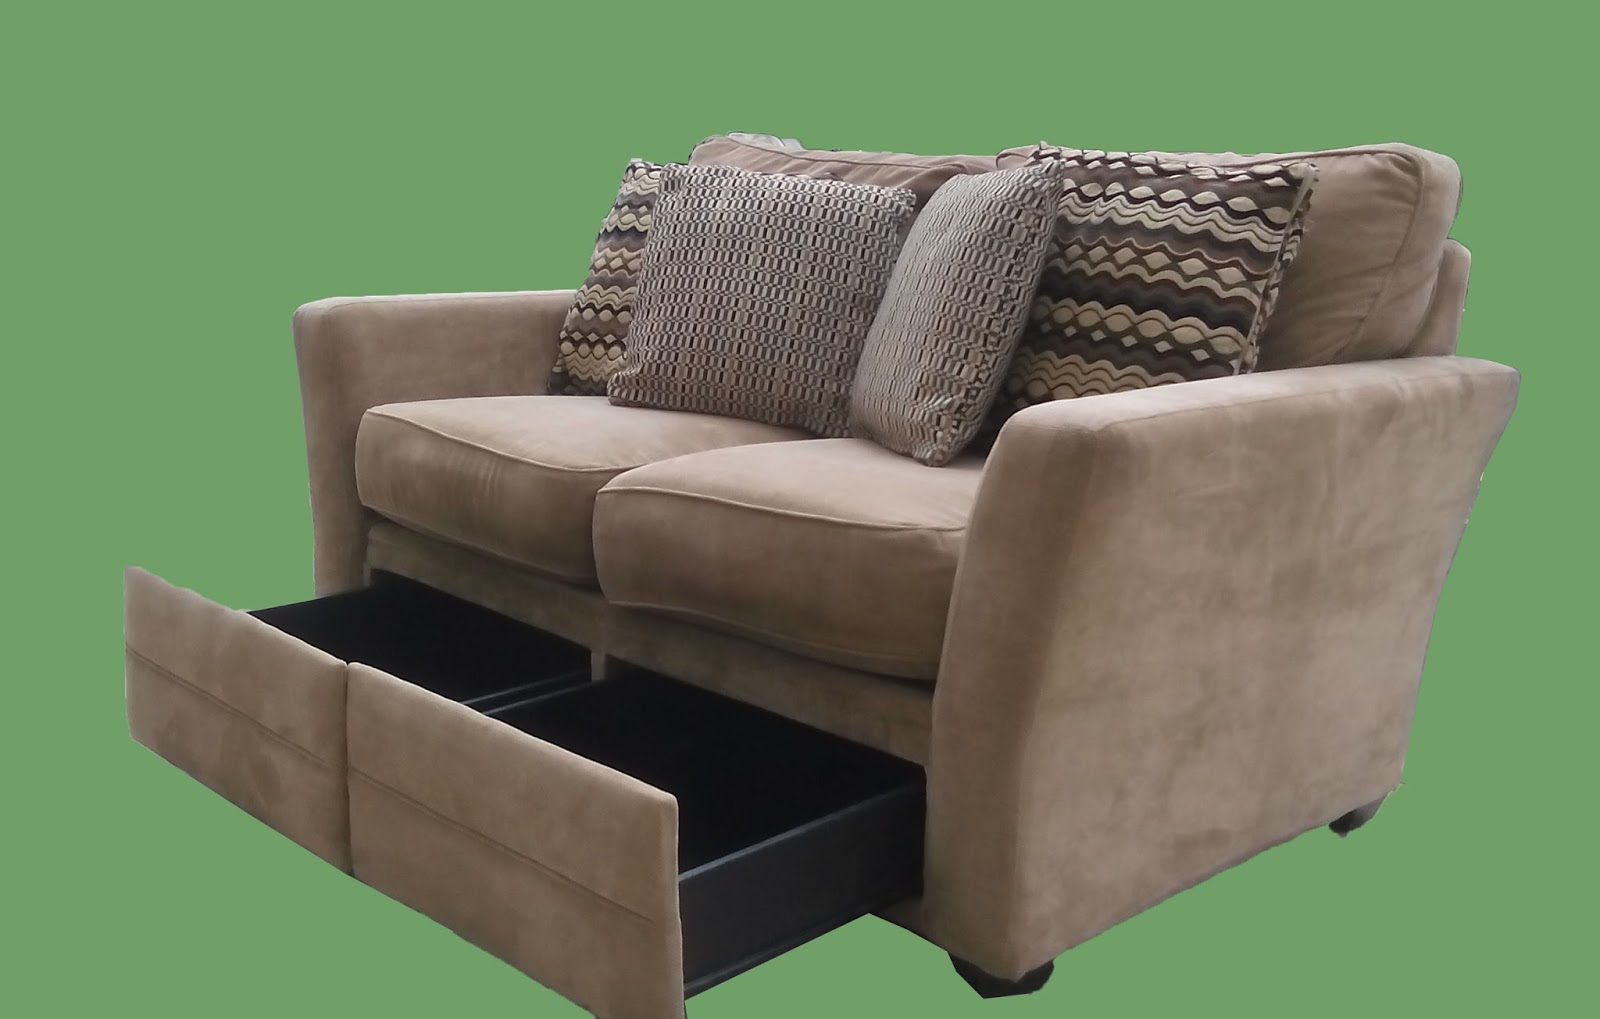 Lovely Loveseat With Storage Drawers $145   SOLD